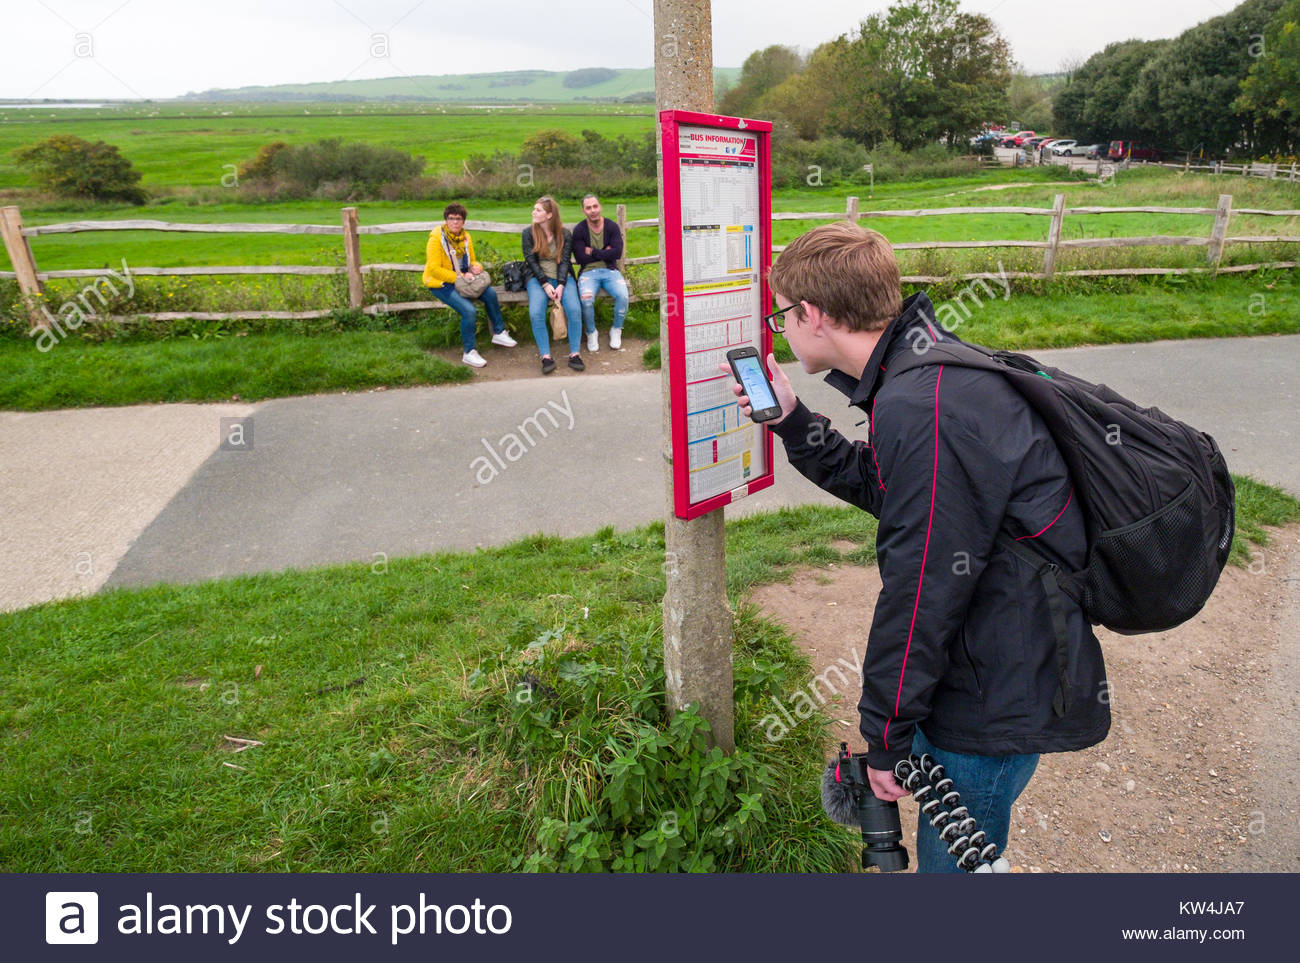 Young Man Checking Bus Schedule On His Smartphone Comparing To Posted Schedule At Bus Stop Exceat Cuckmere Haven Lewes District East Sus Engla